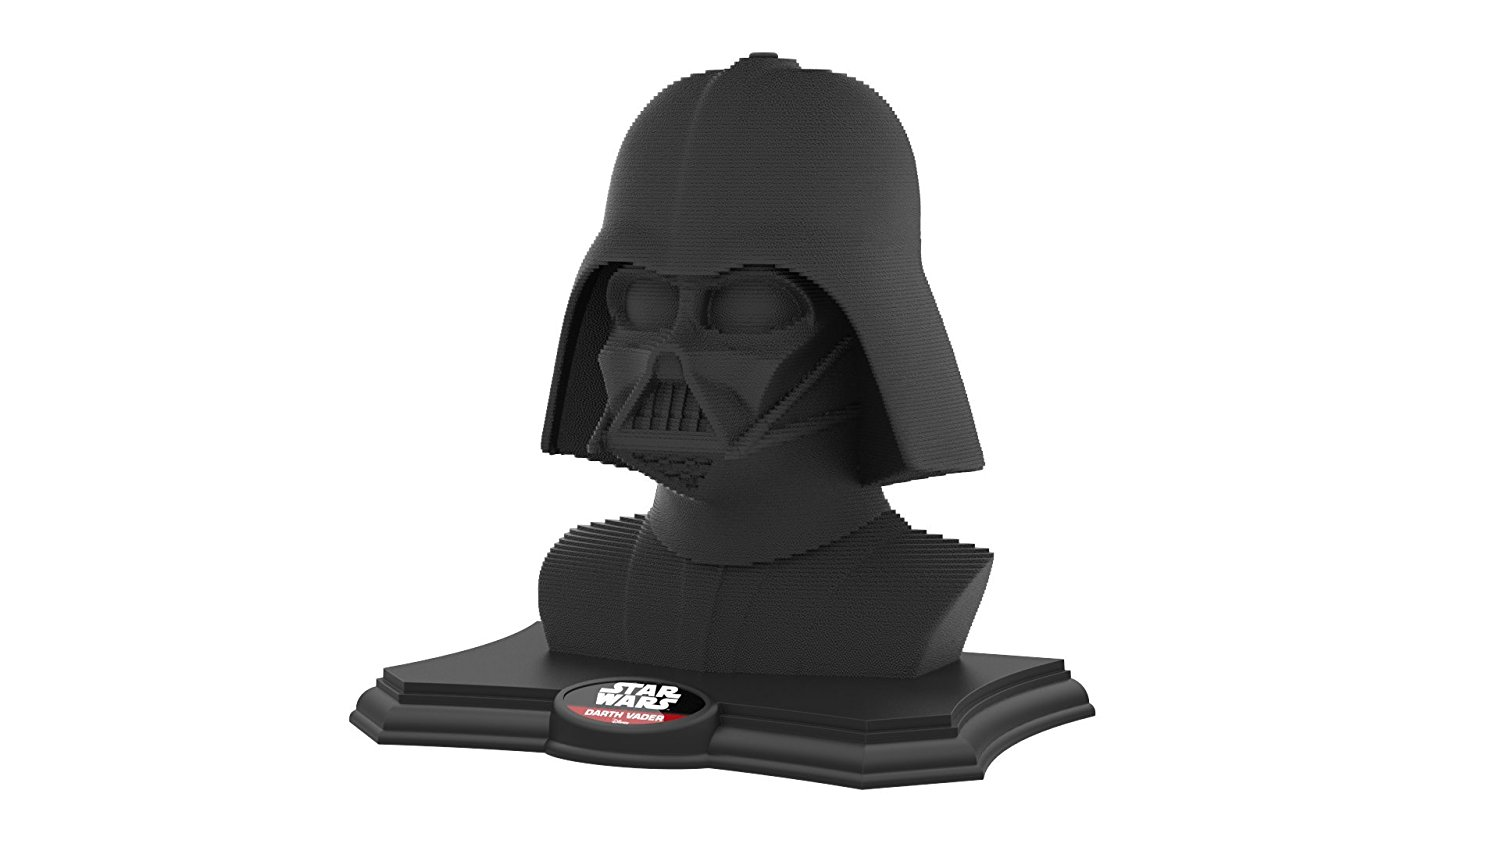 Juguetes de Star Wars: Darth Vader puzzle 3D